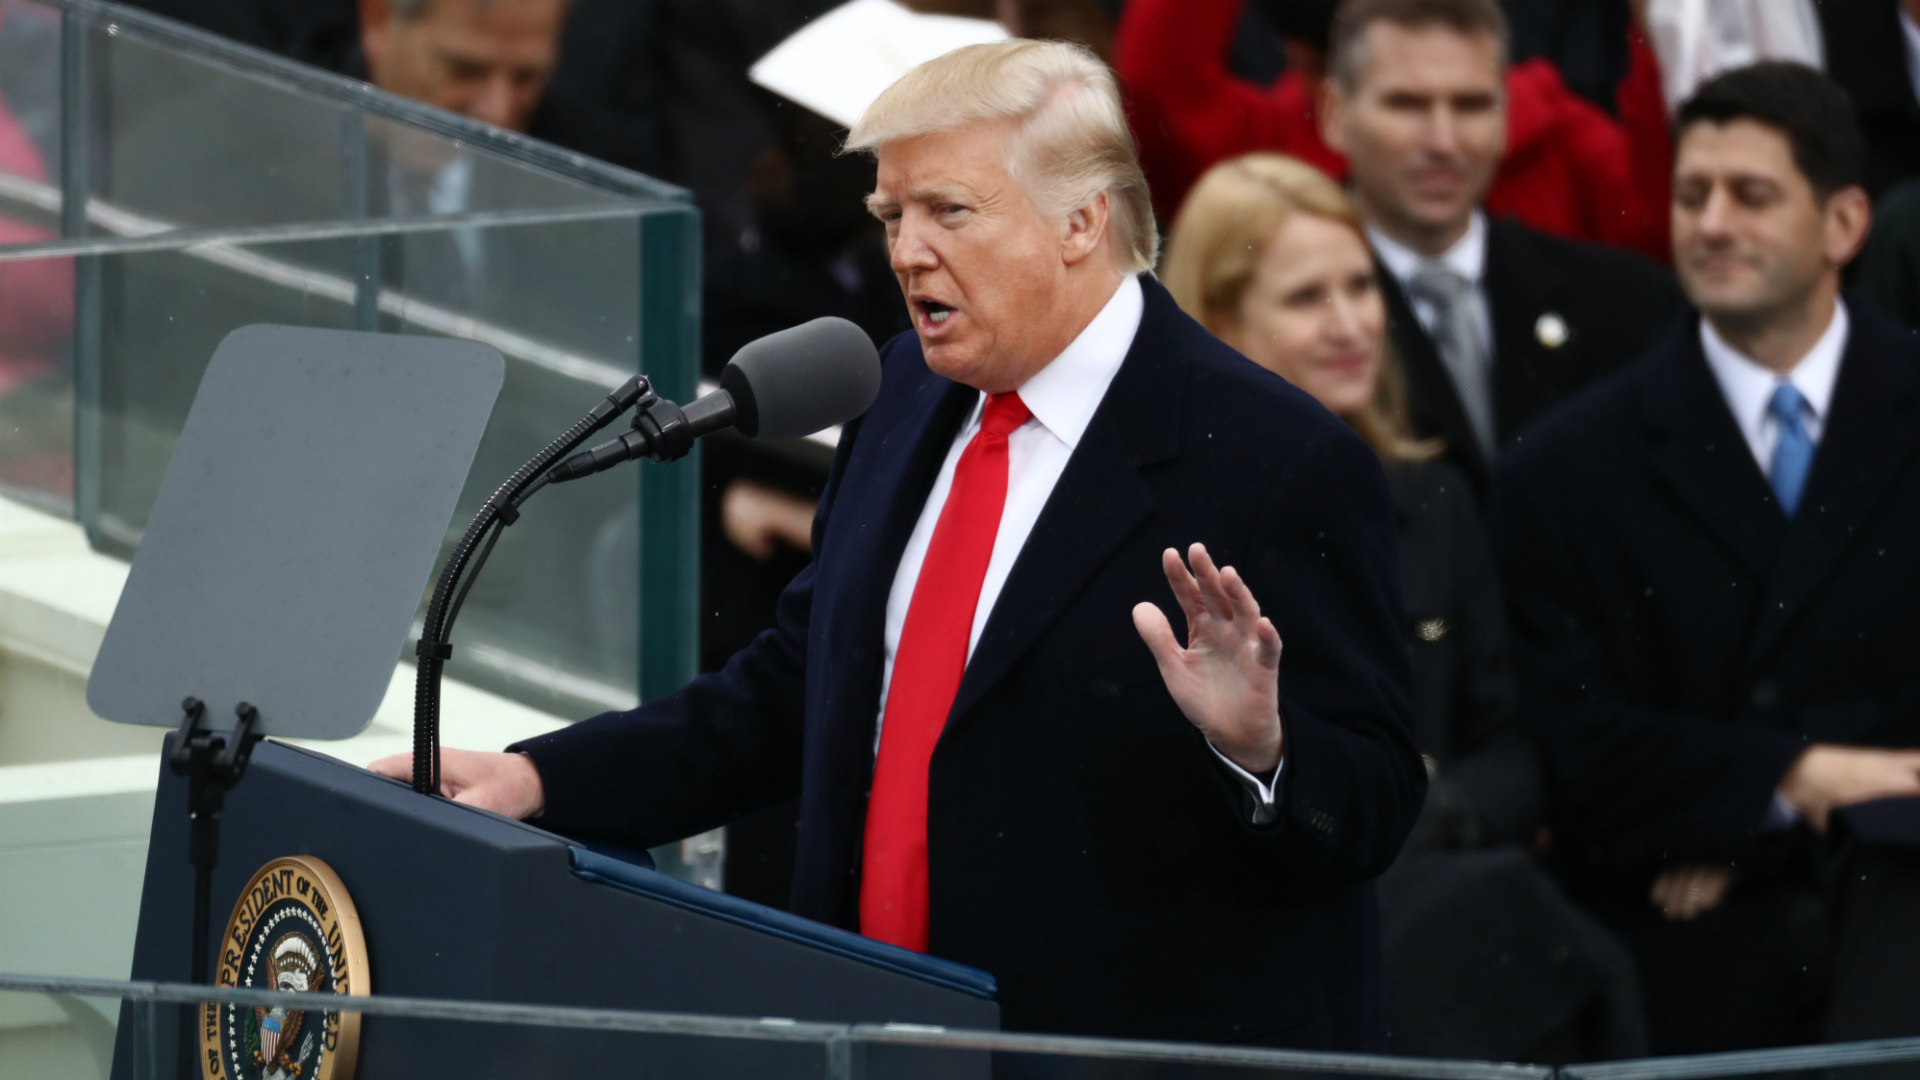 Donald Trump is sworn in as president, vows to end 'American carnage'